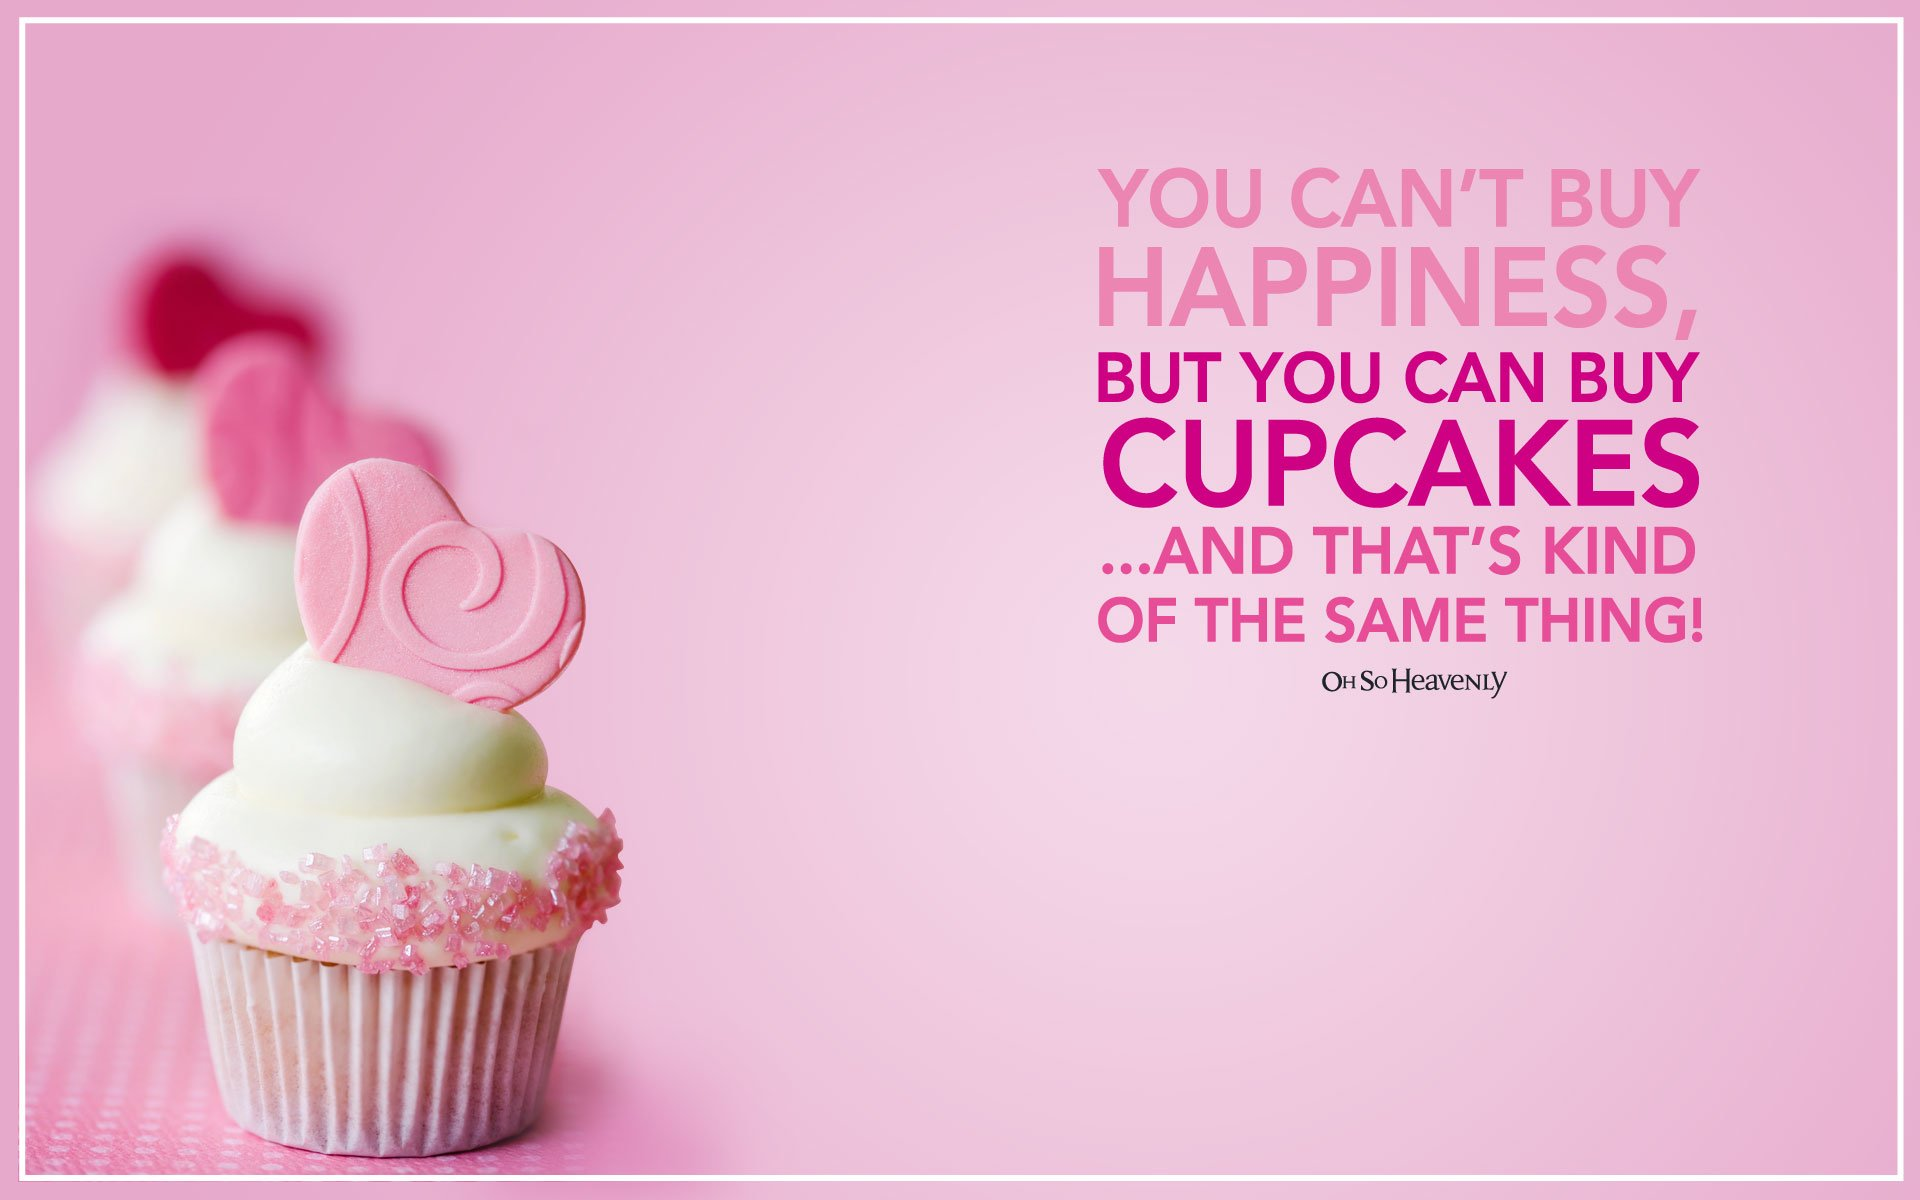 Pretty Pink Cupcakes Wallpaper Widescreen 10978 Wallpaper Wallpaper 1920x1200